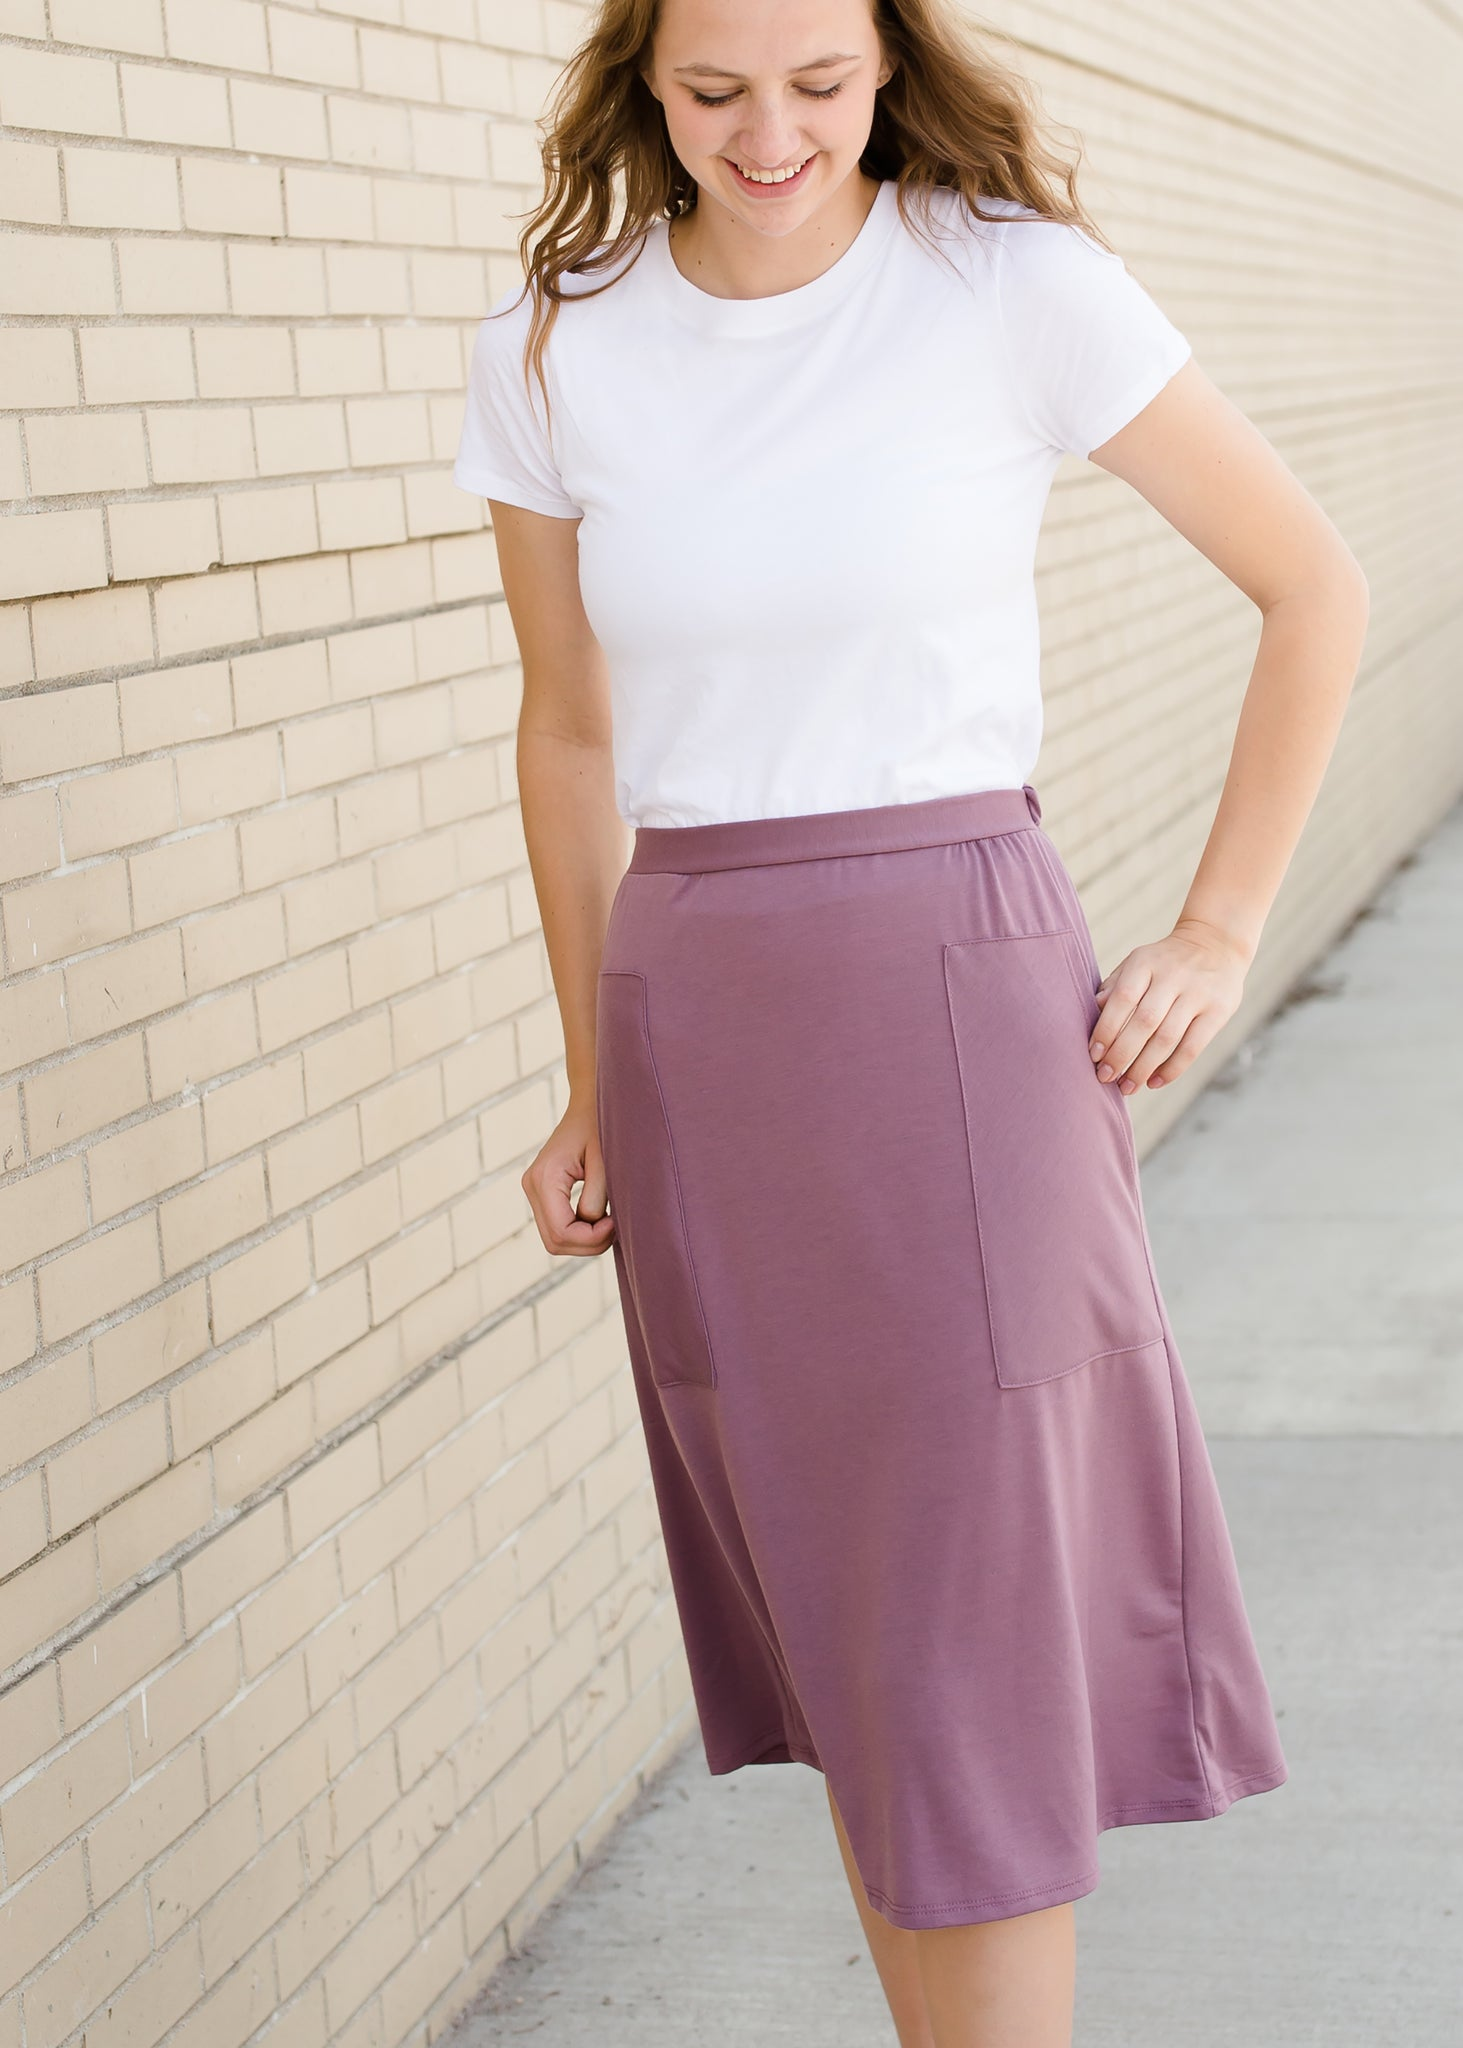 Mauve and Black Knit Midi Skirt With Pockets